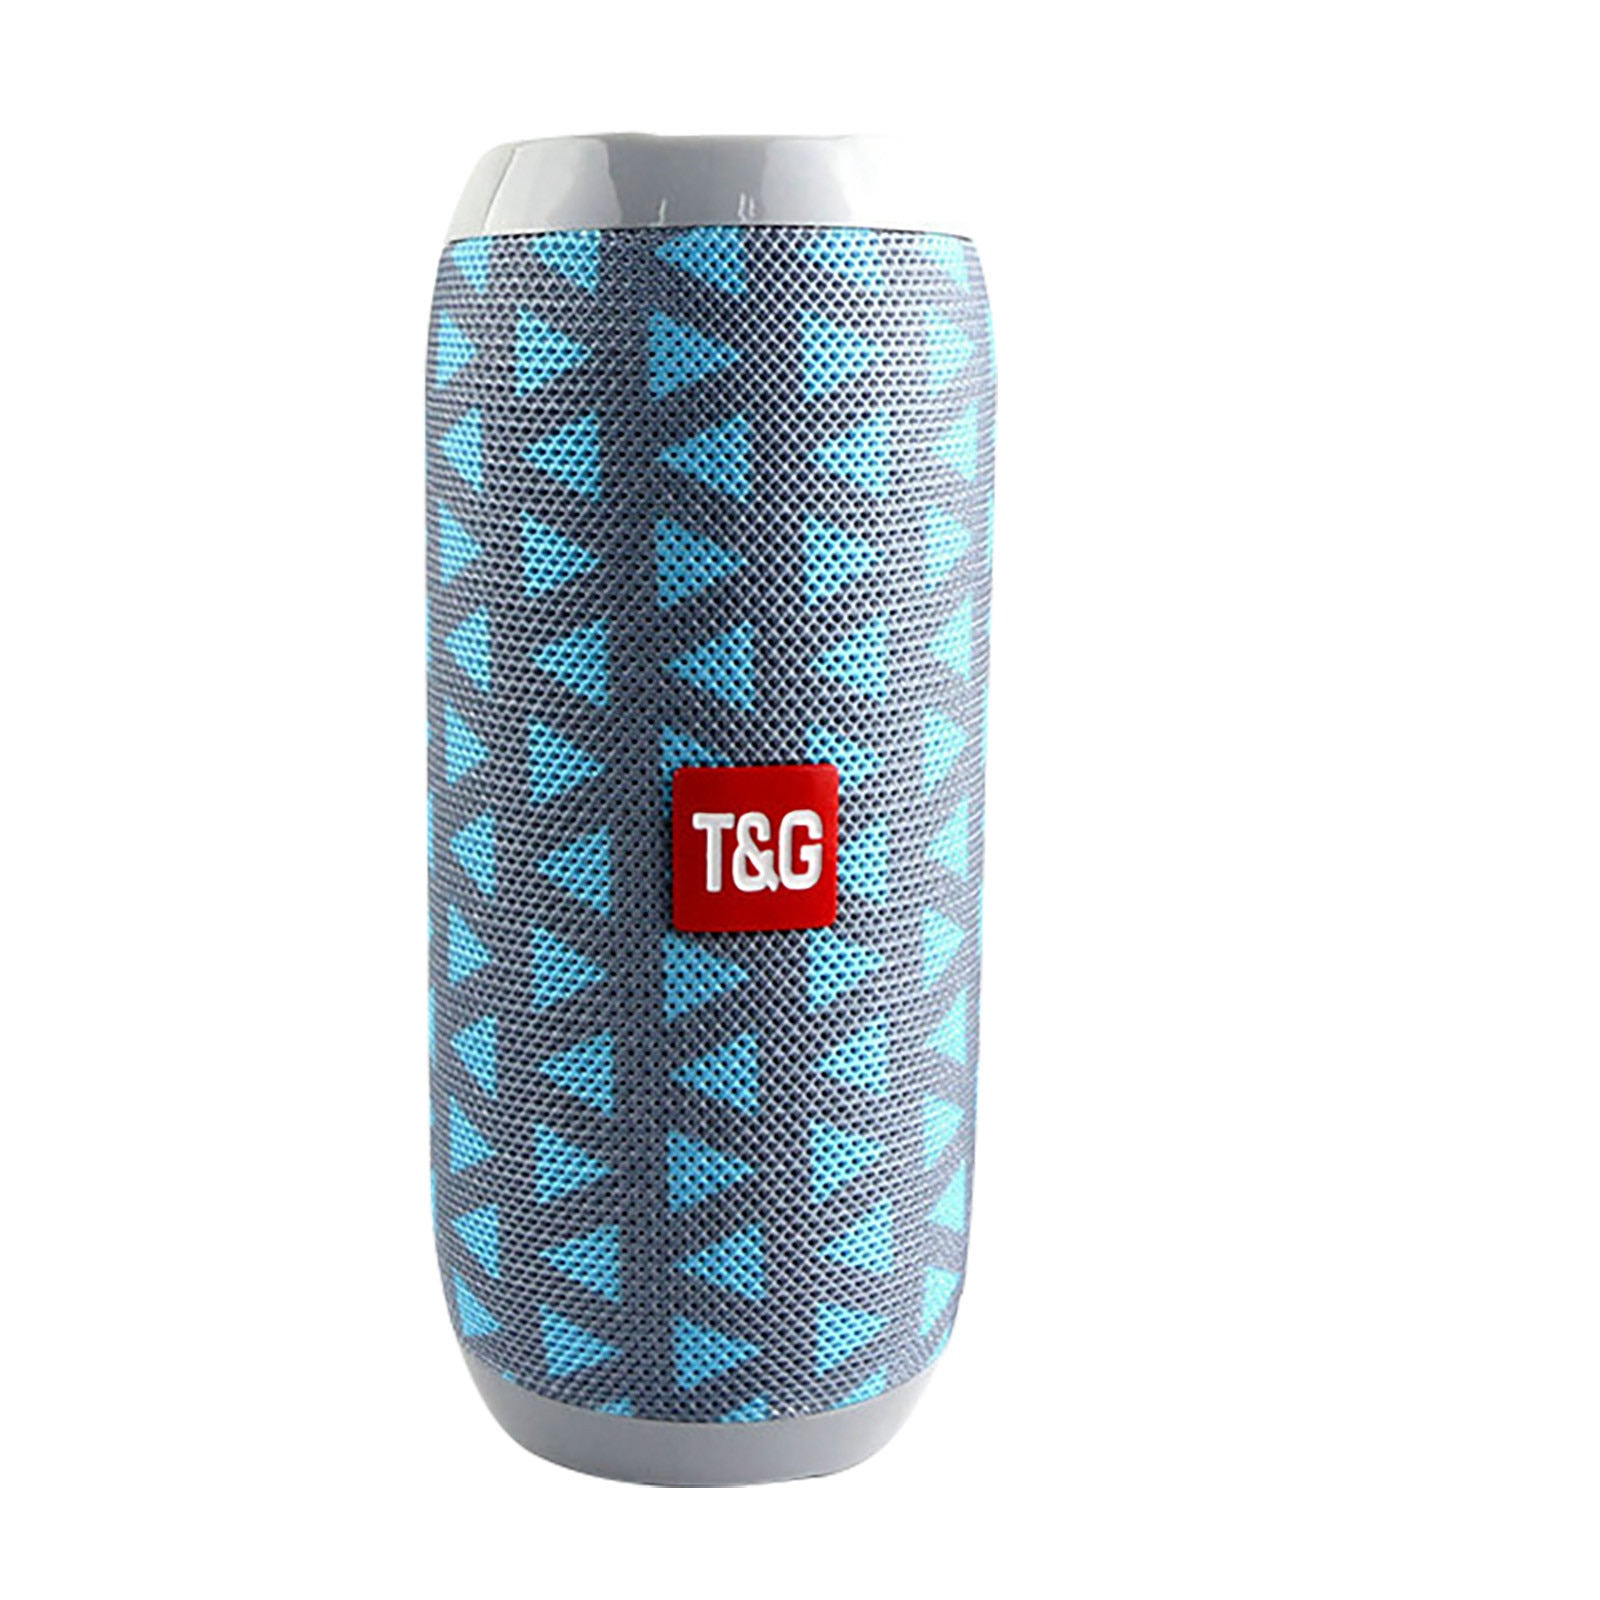 H473d74bb24804204a7f2af551ad5e184x - Portable Bluetooth Speaker Wireless Bass Column Waterproof Outdoor USB Speakers Support AUX TF Subwoofer Loudspeaker